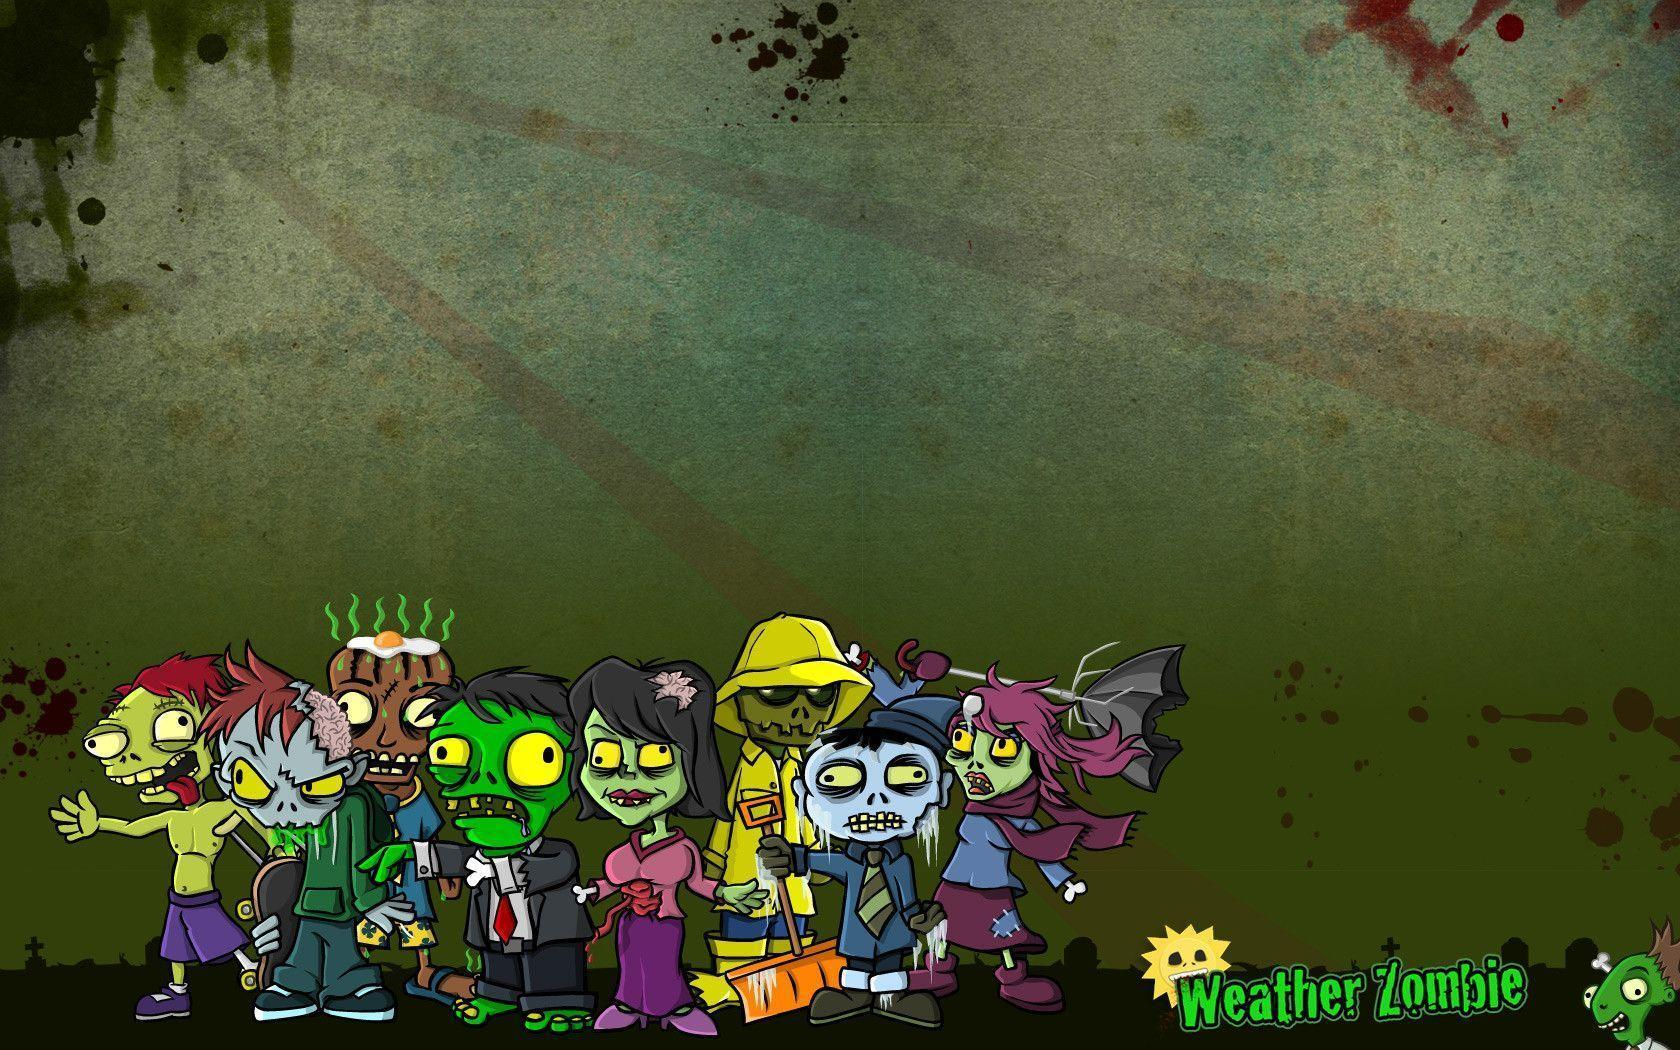 Cute Zombie Wallpapers - Wallpaper Cave